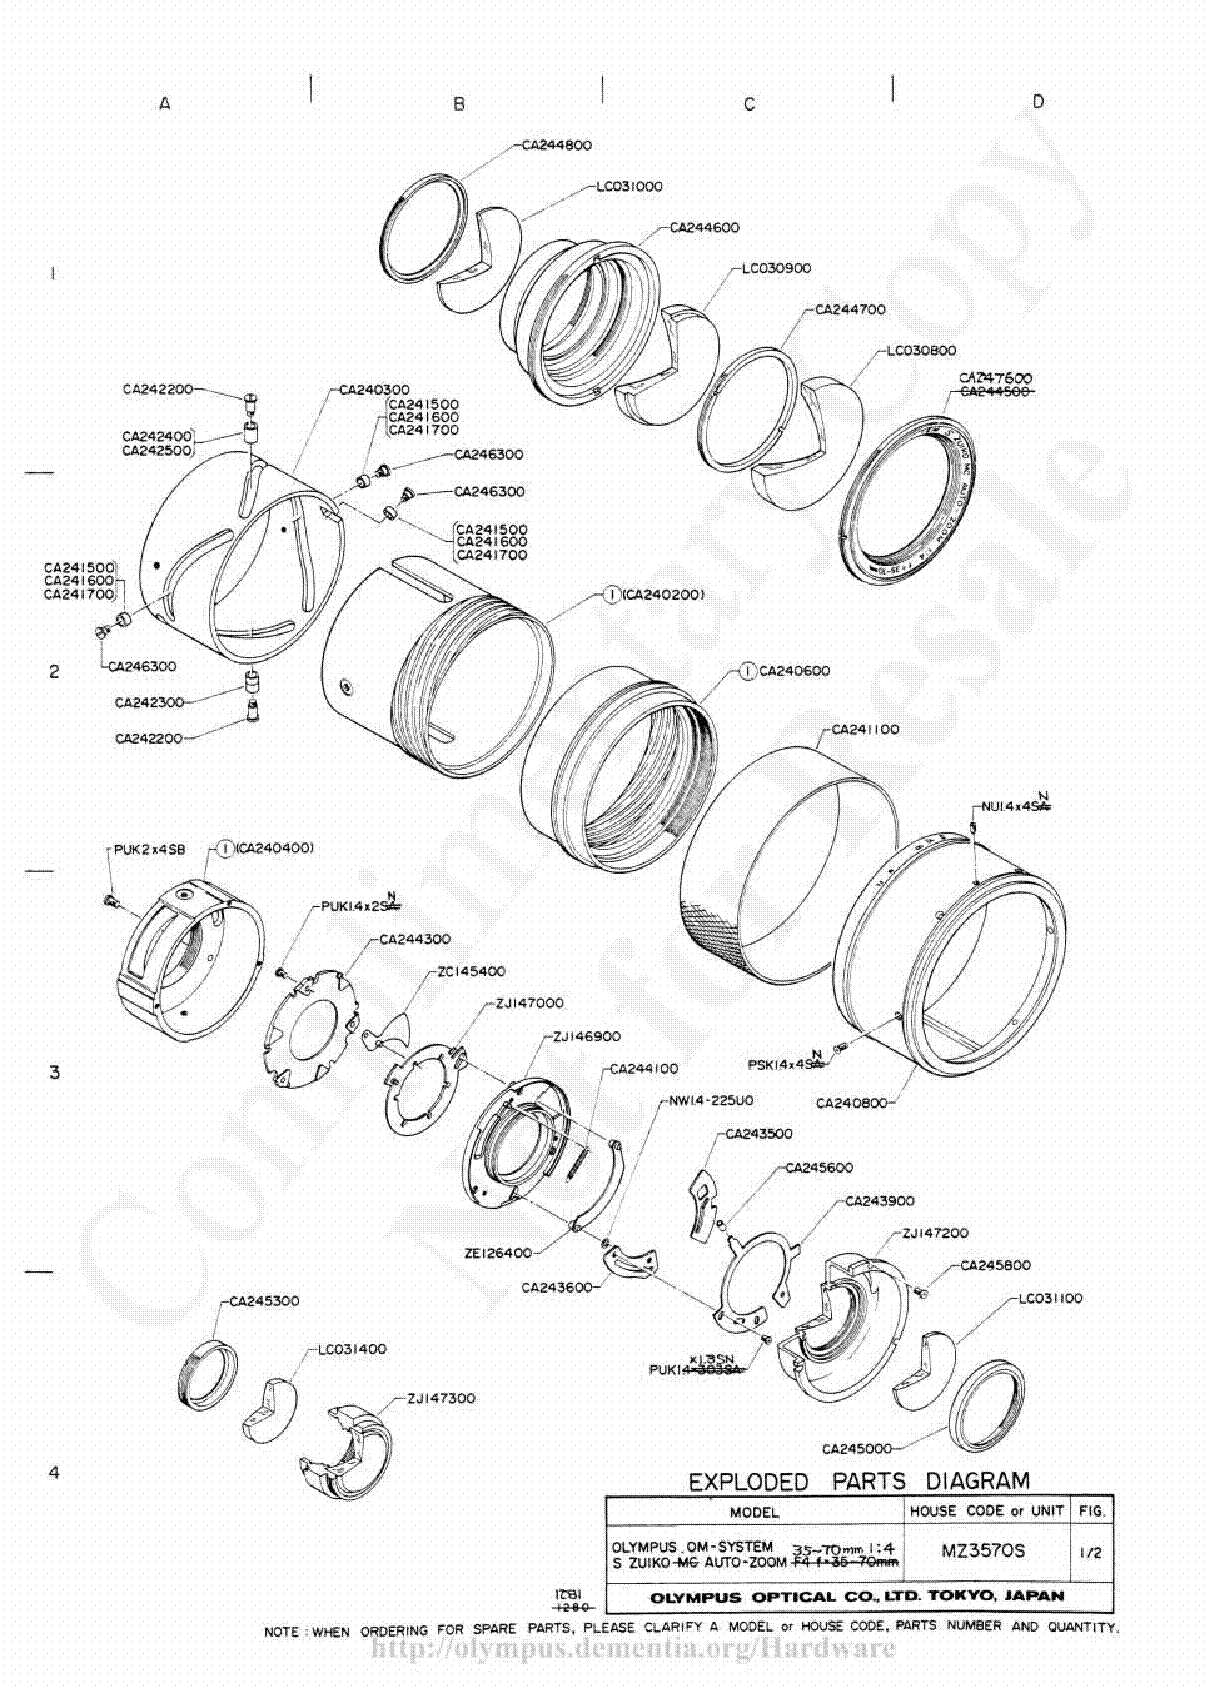 OLYMPUS 38MM F1.8 EXPLODED PARTS DIAGRAM Service Manual